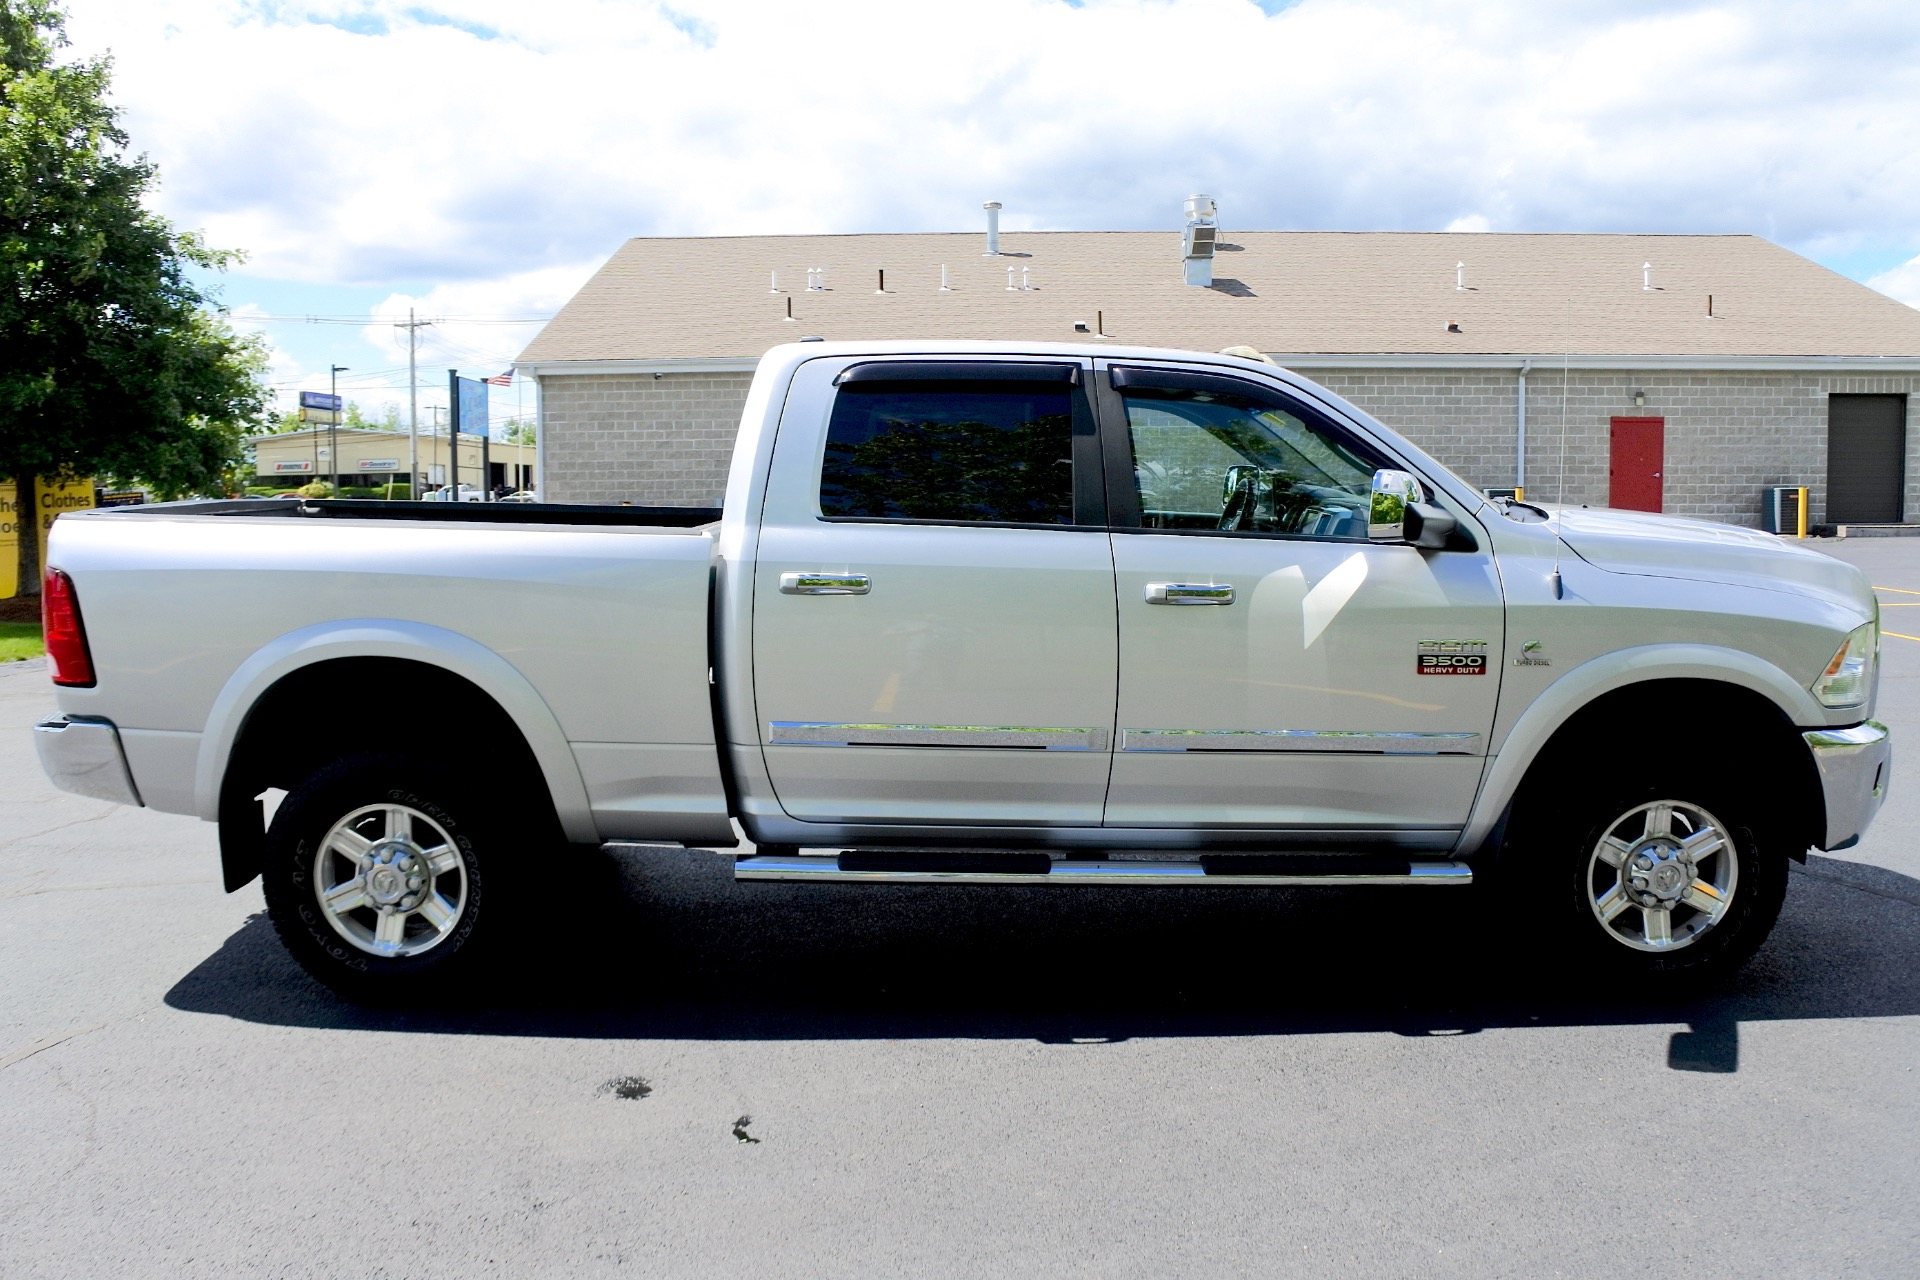 Used 2010 Dodge Ram 3500 4WD Crew Cab 149' Laramie Used 2010 Dodge Ram 3500 4WD Crew Cab 149' Laramie for sale  at Metro West Motorcars LLC in Shrewsbury MA 6